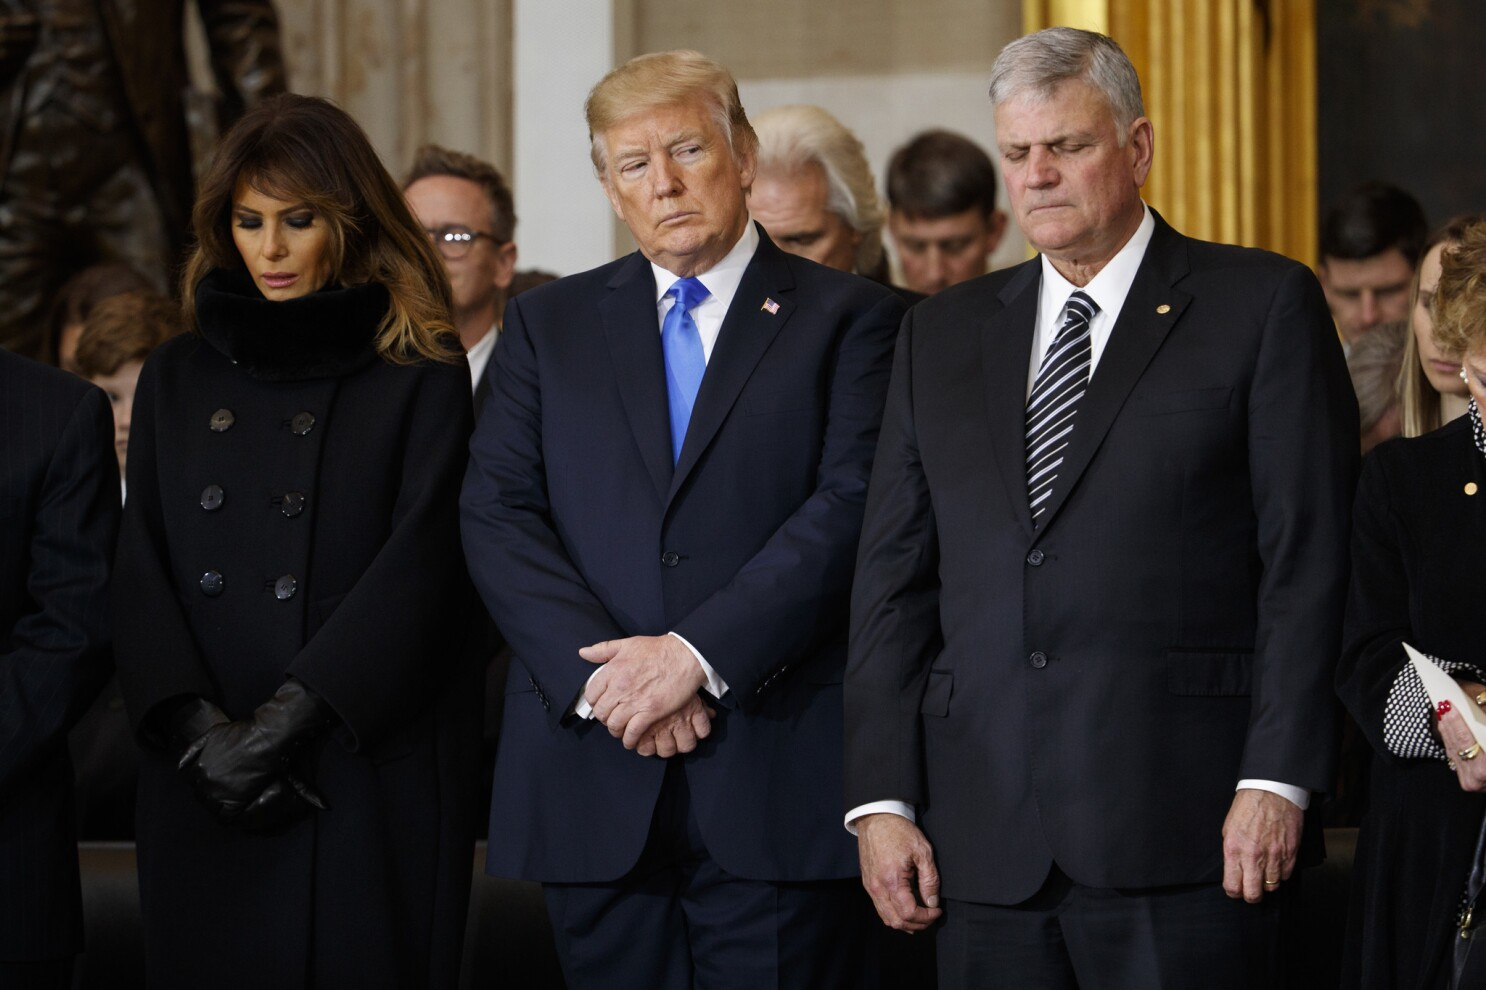 In Theory: Is it blasphemous to pray for President Trump?